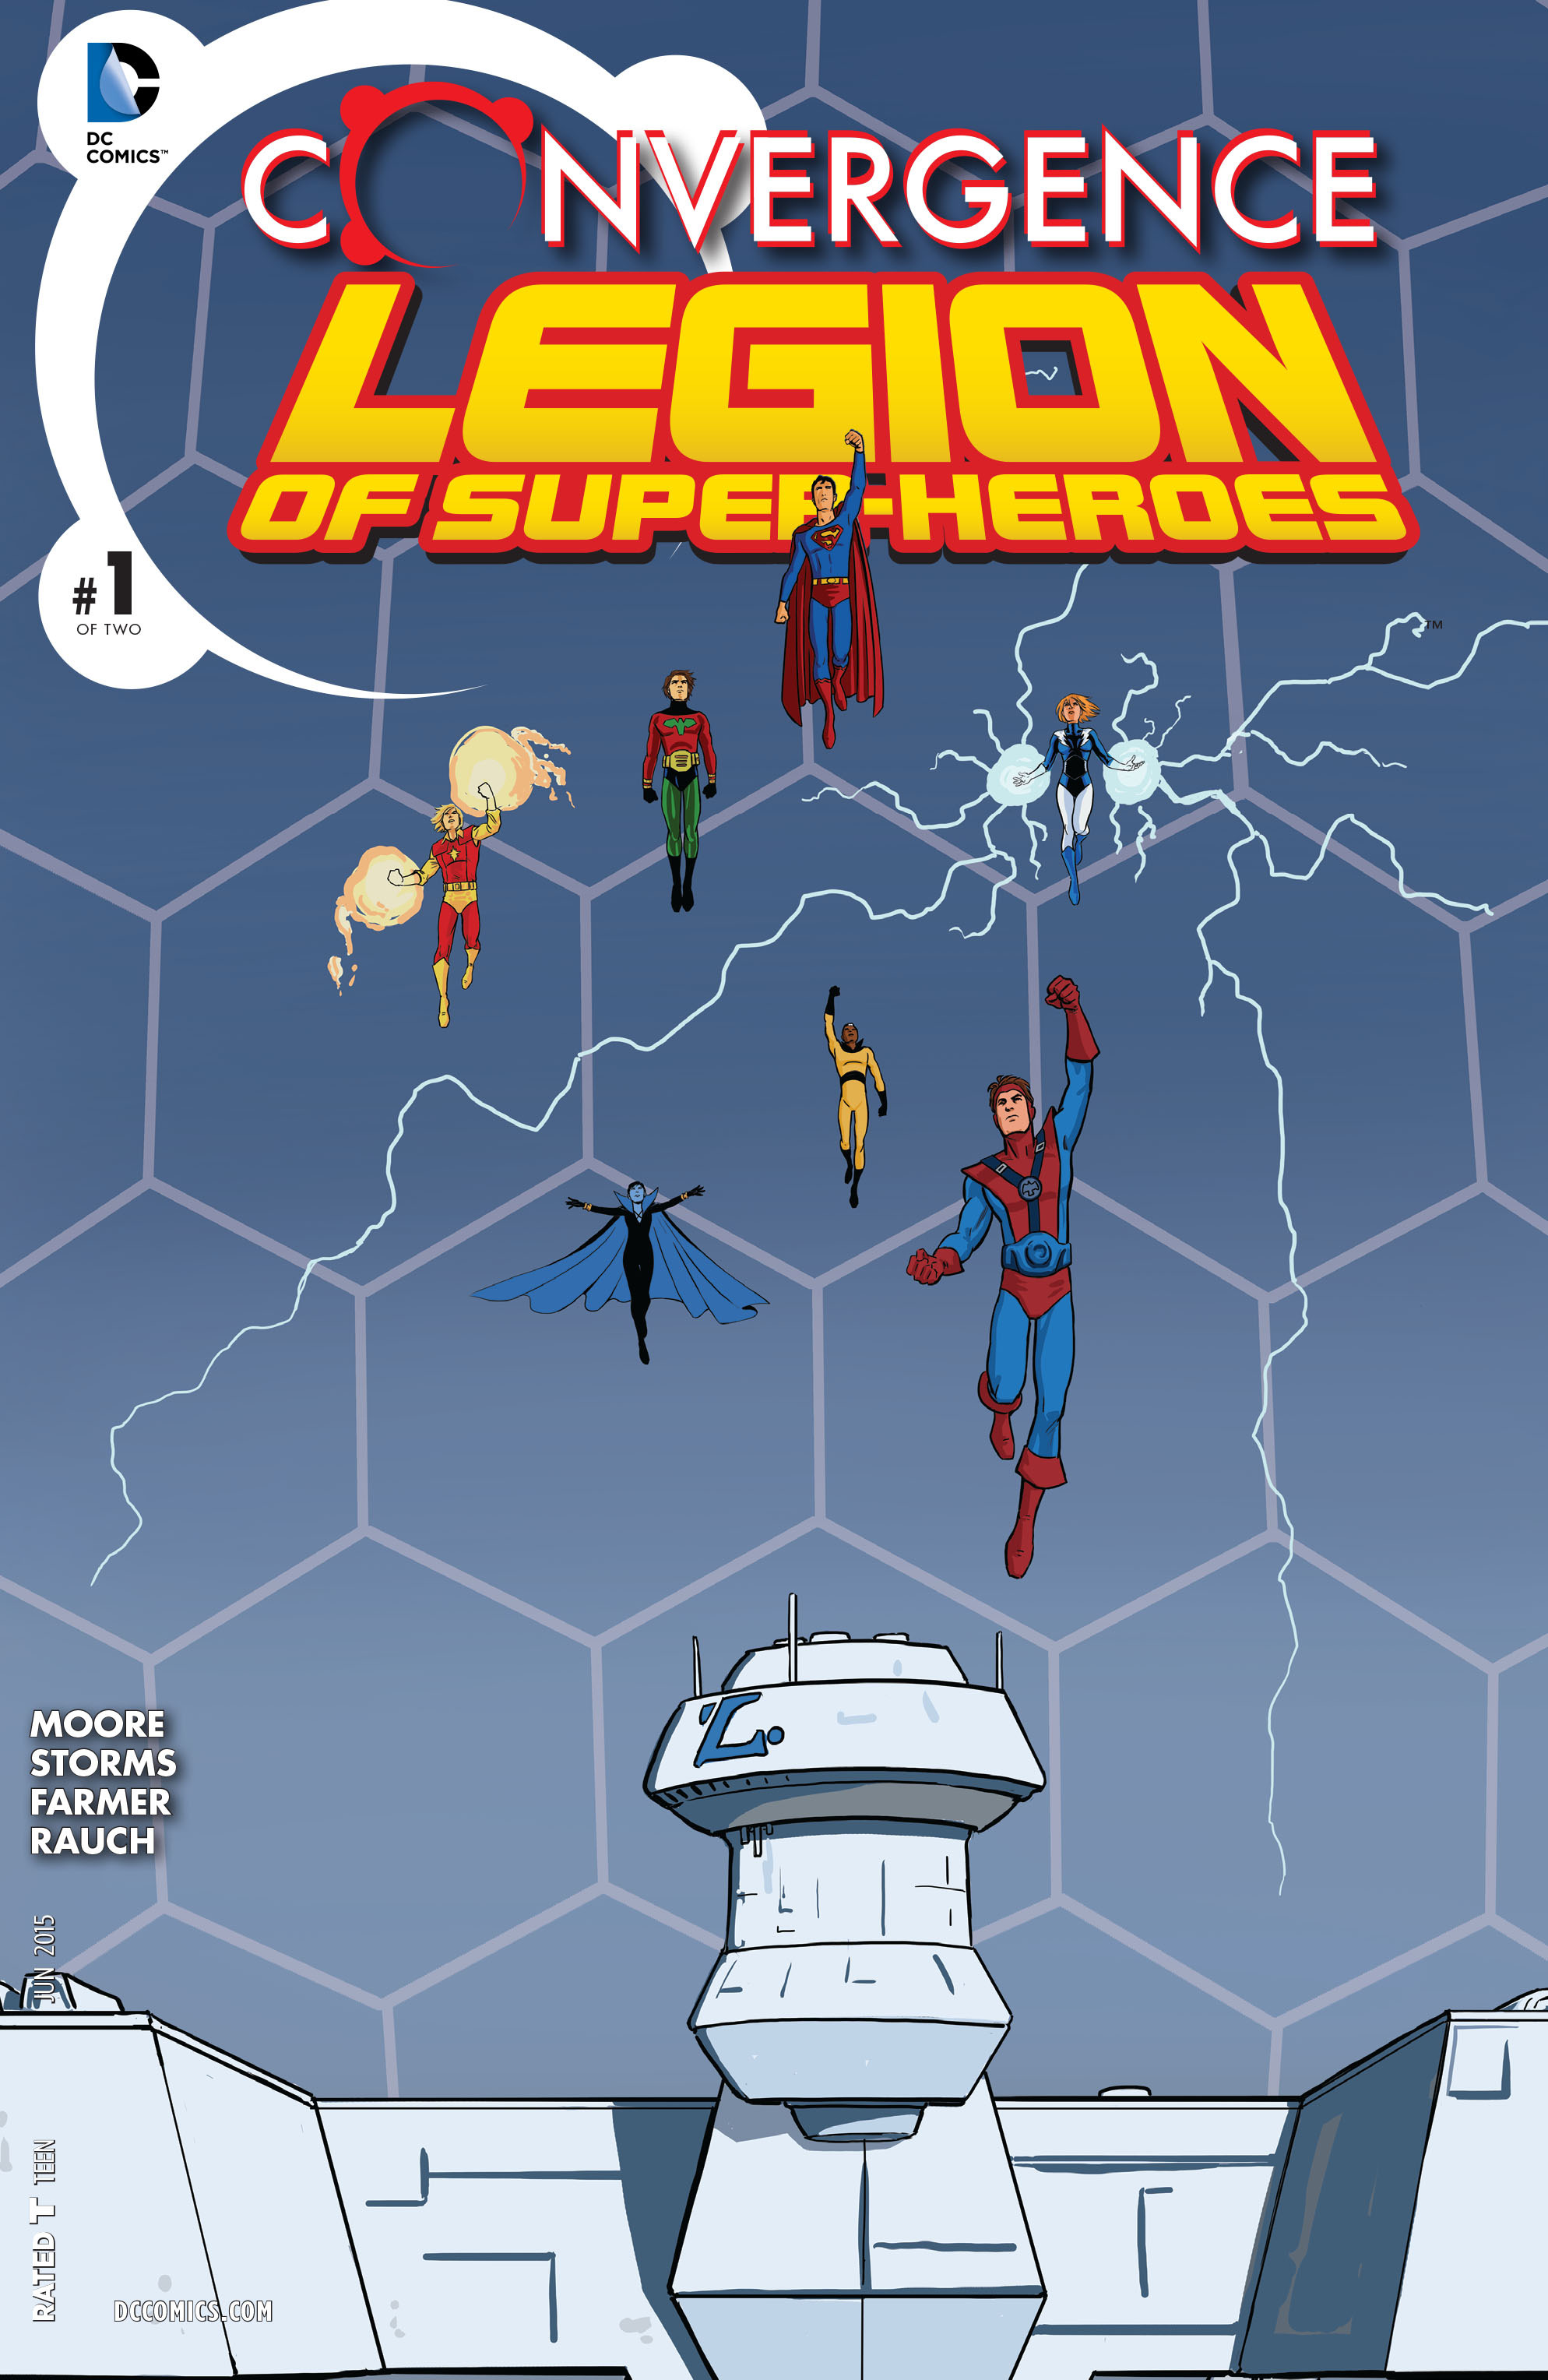 Read online Convergence Superboy and the Legion of Super-Heroes comic -  Issue #1 - 1